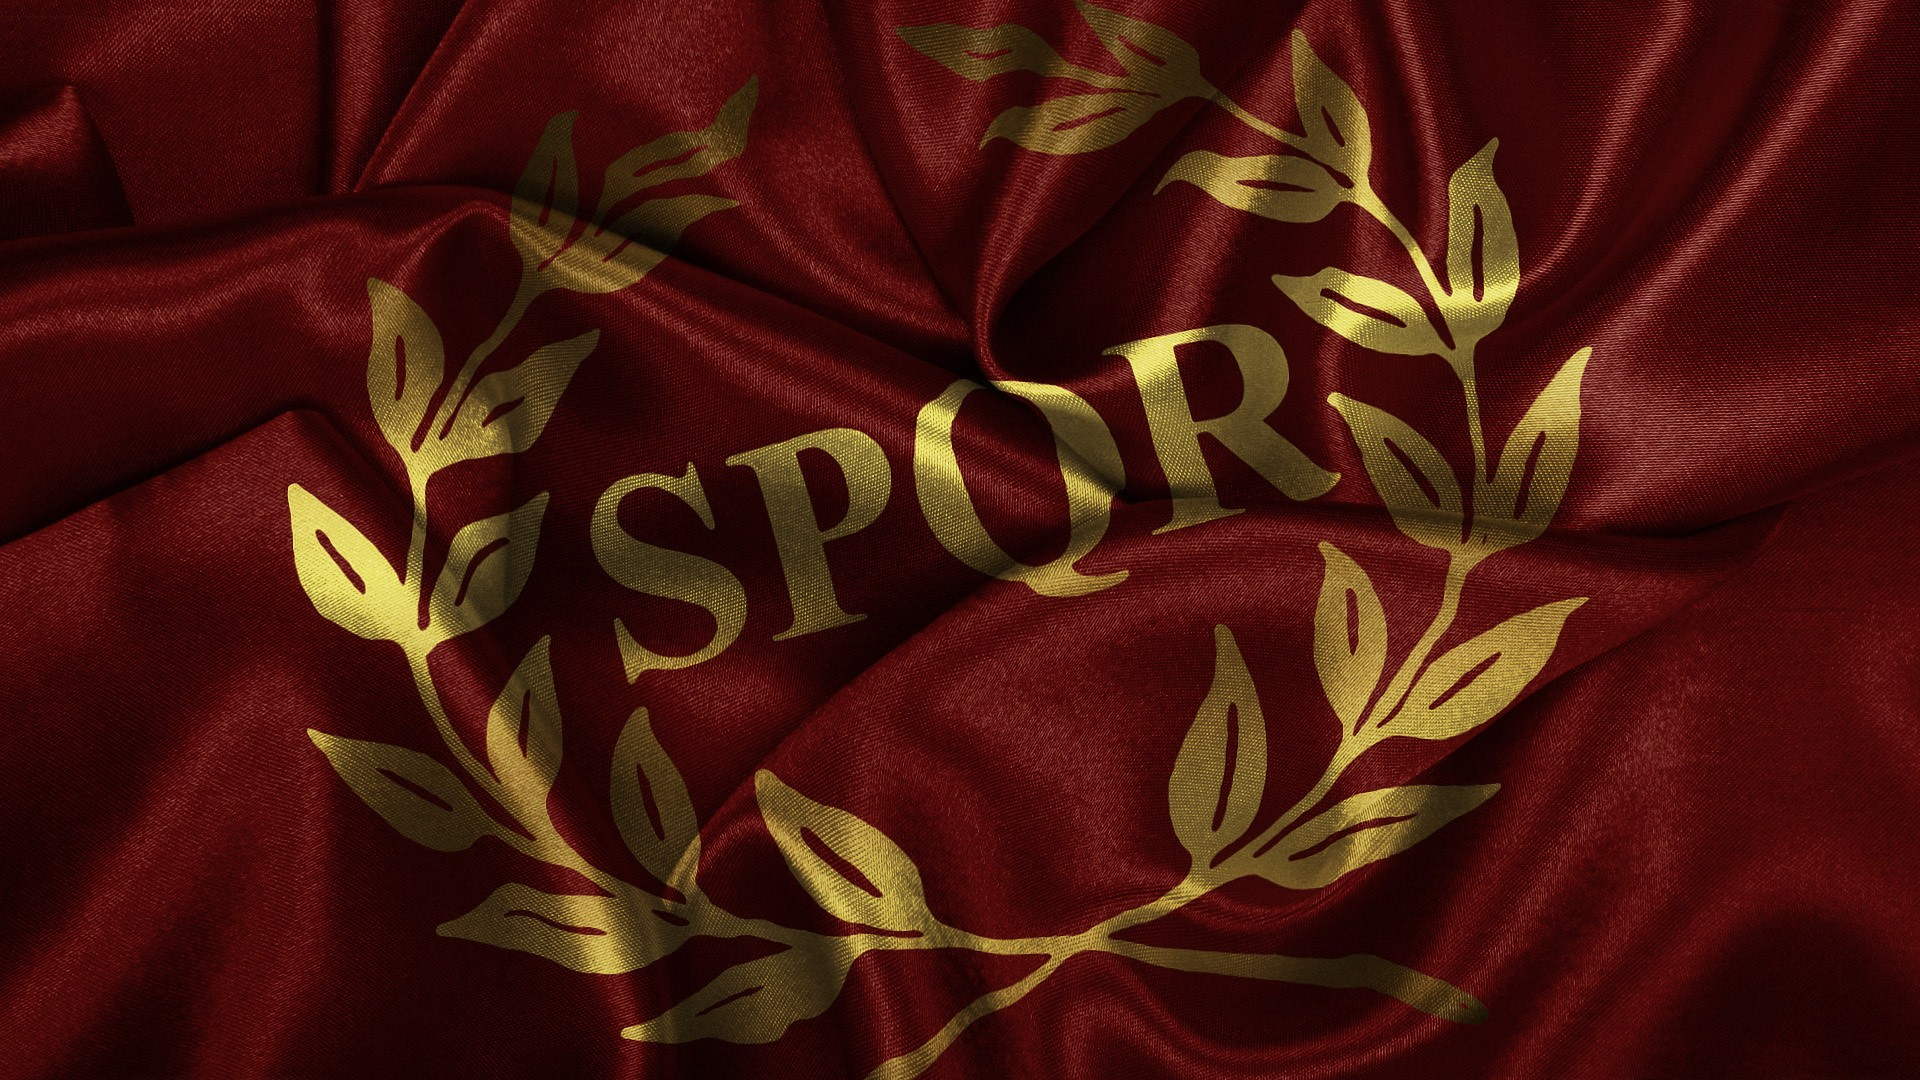 Flags Roman SPQR Wallpaper